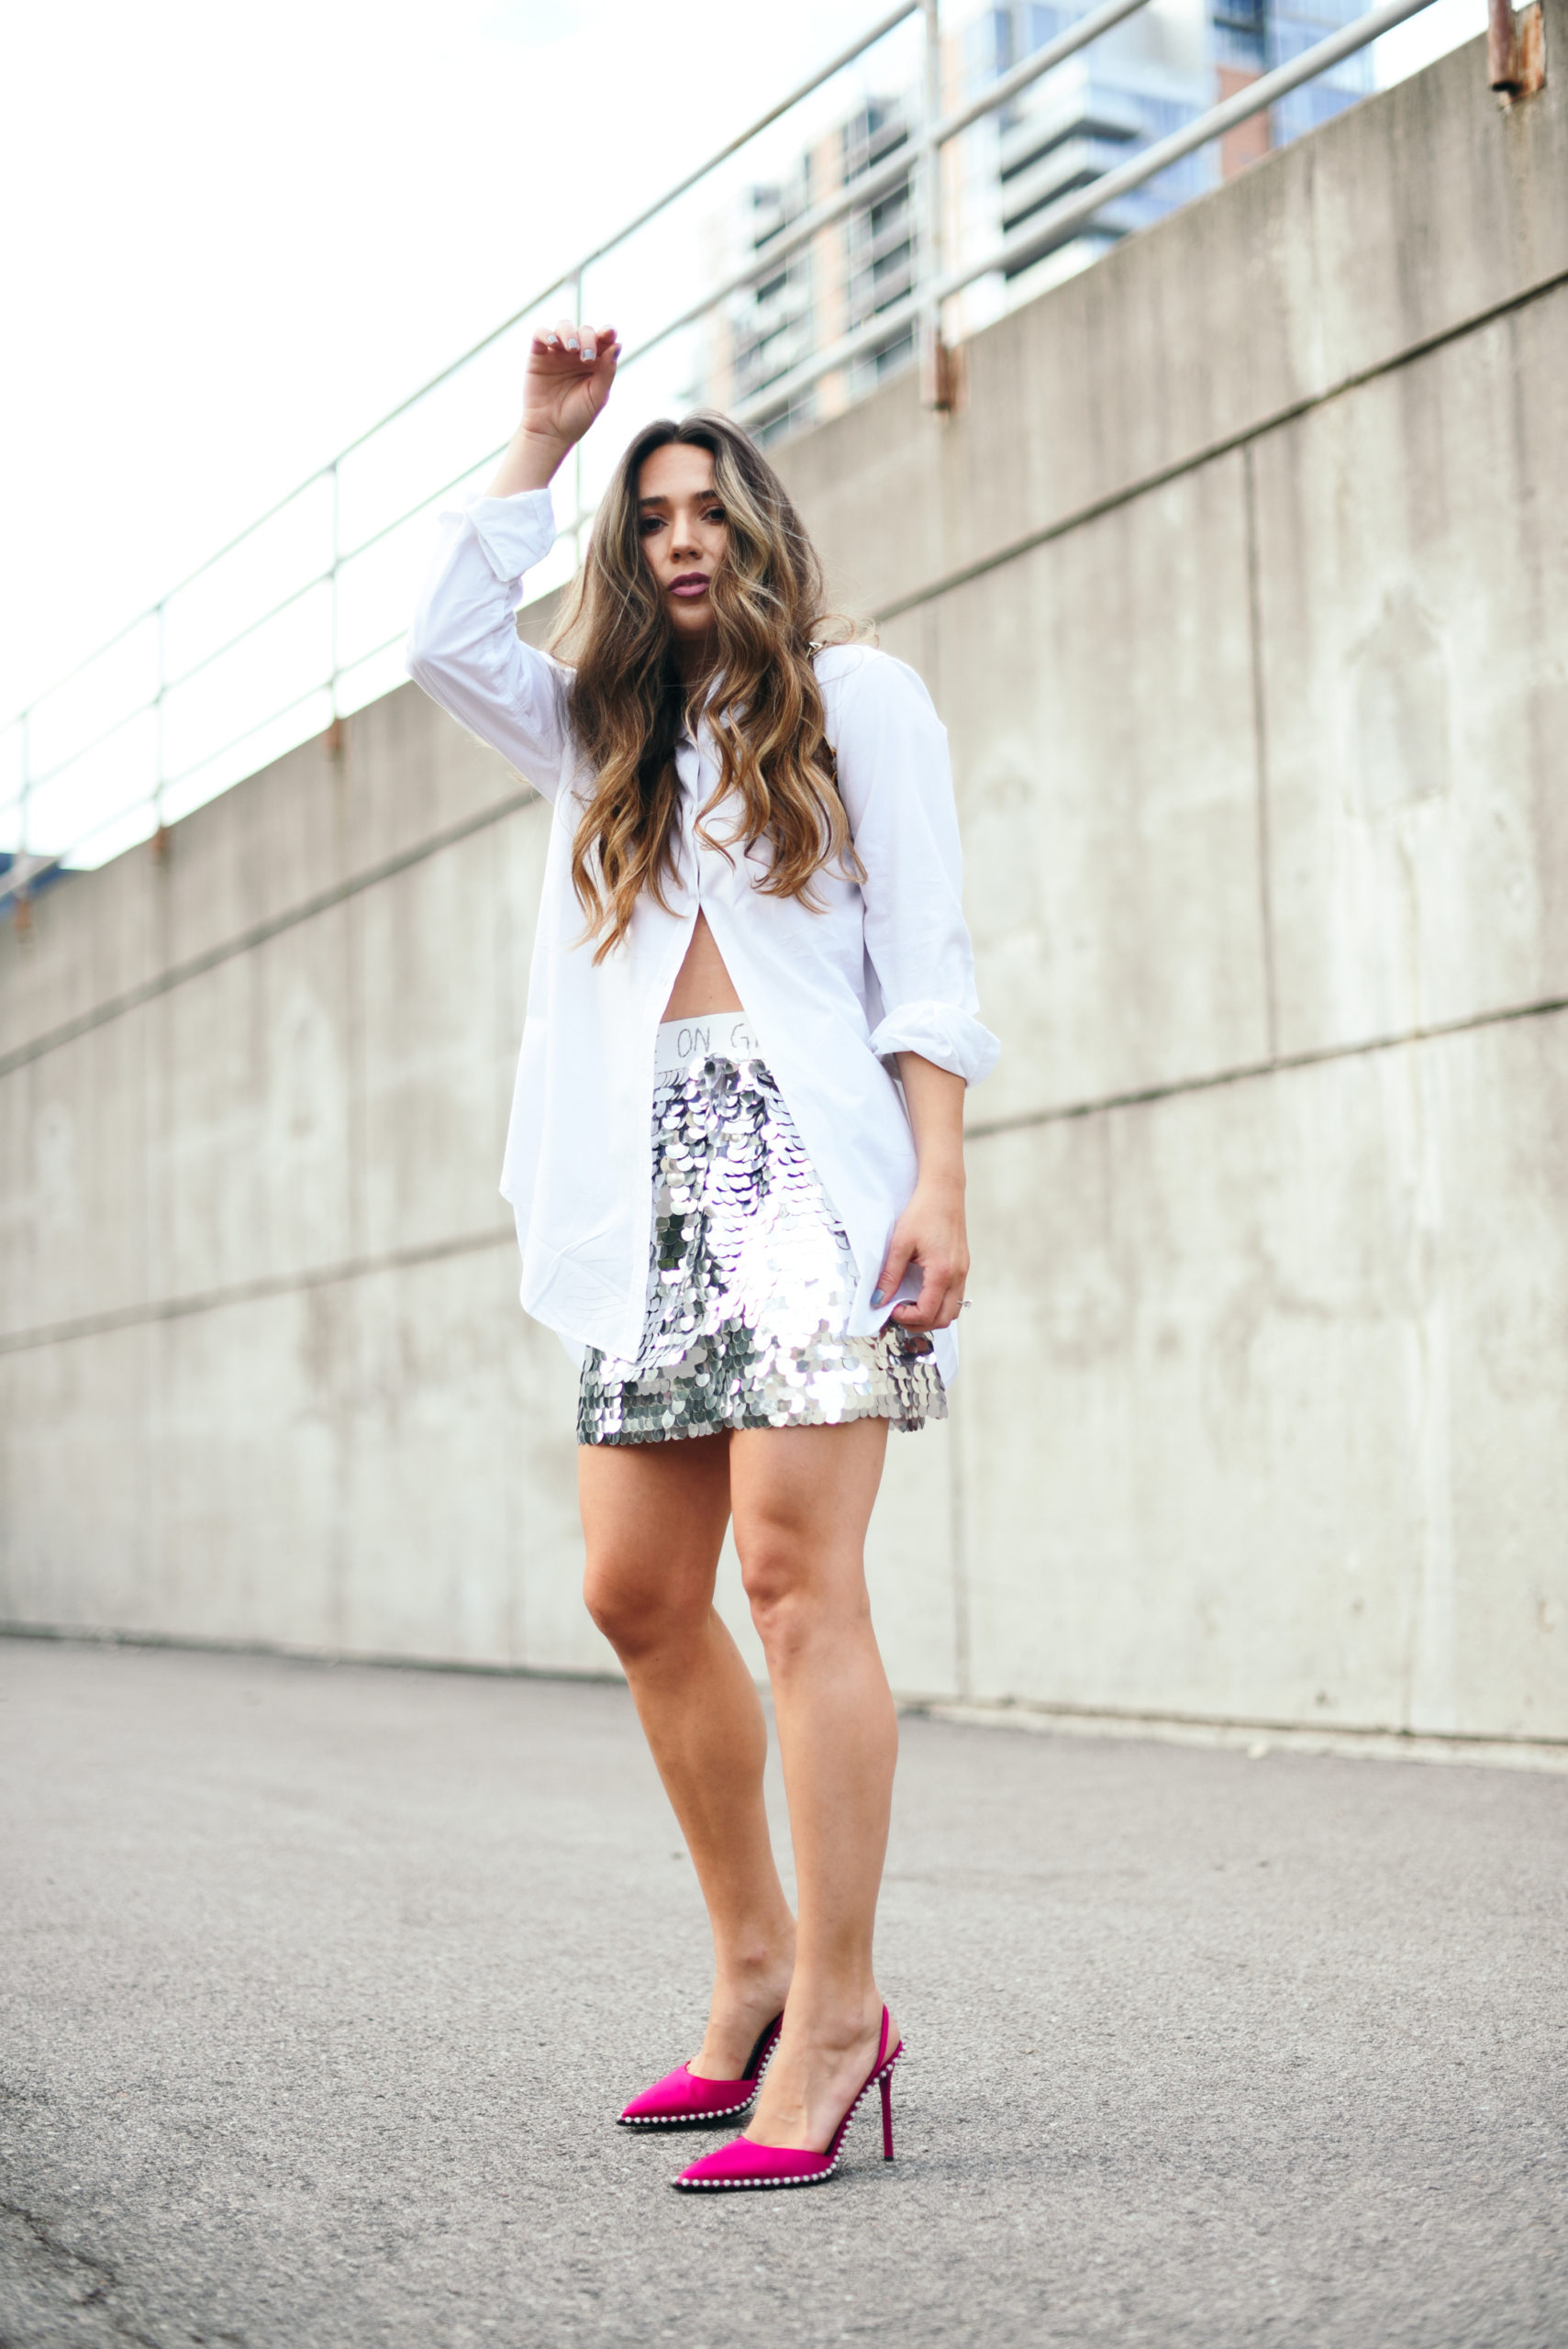 sequin-skirt-day-outfit-street-style-casual-cool